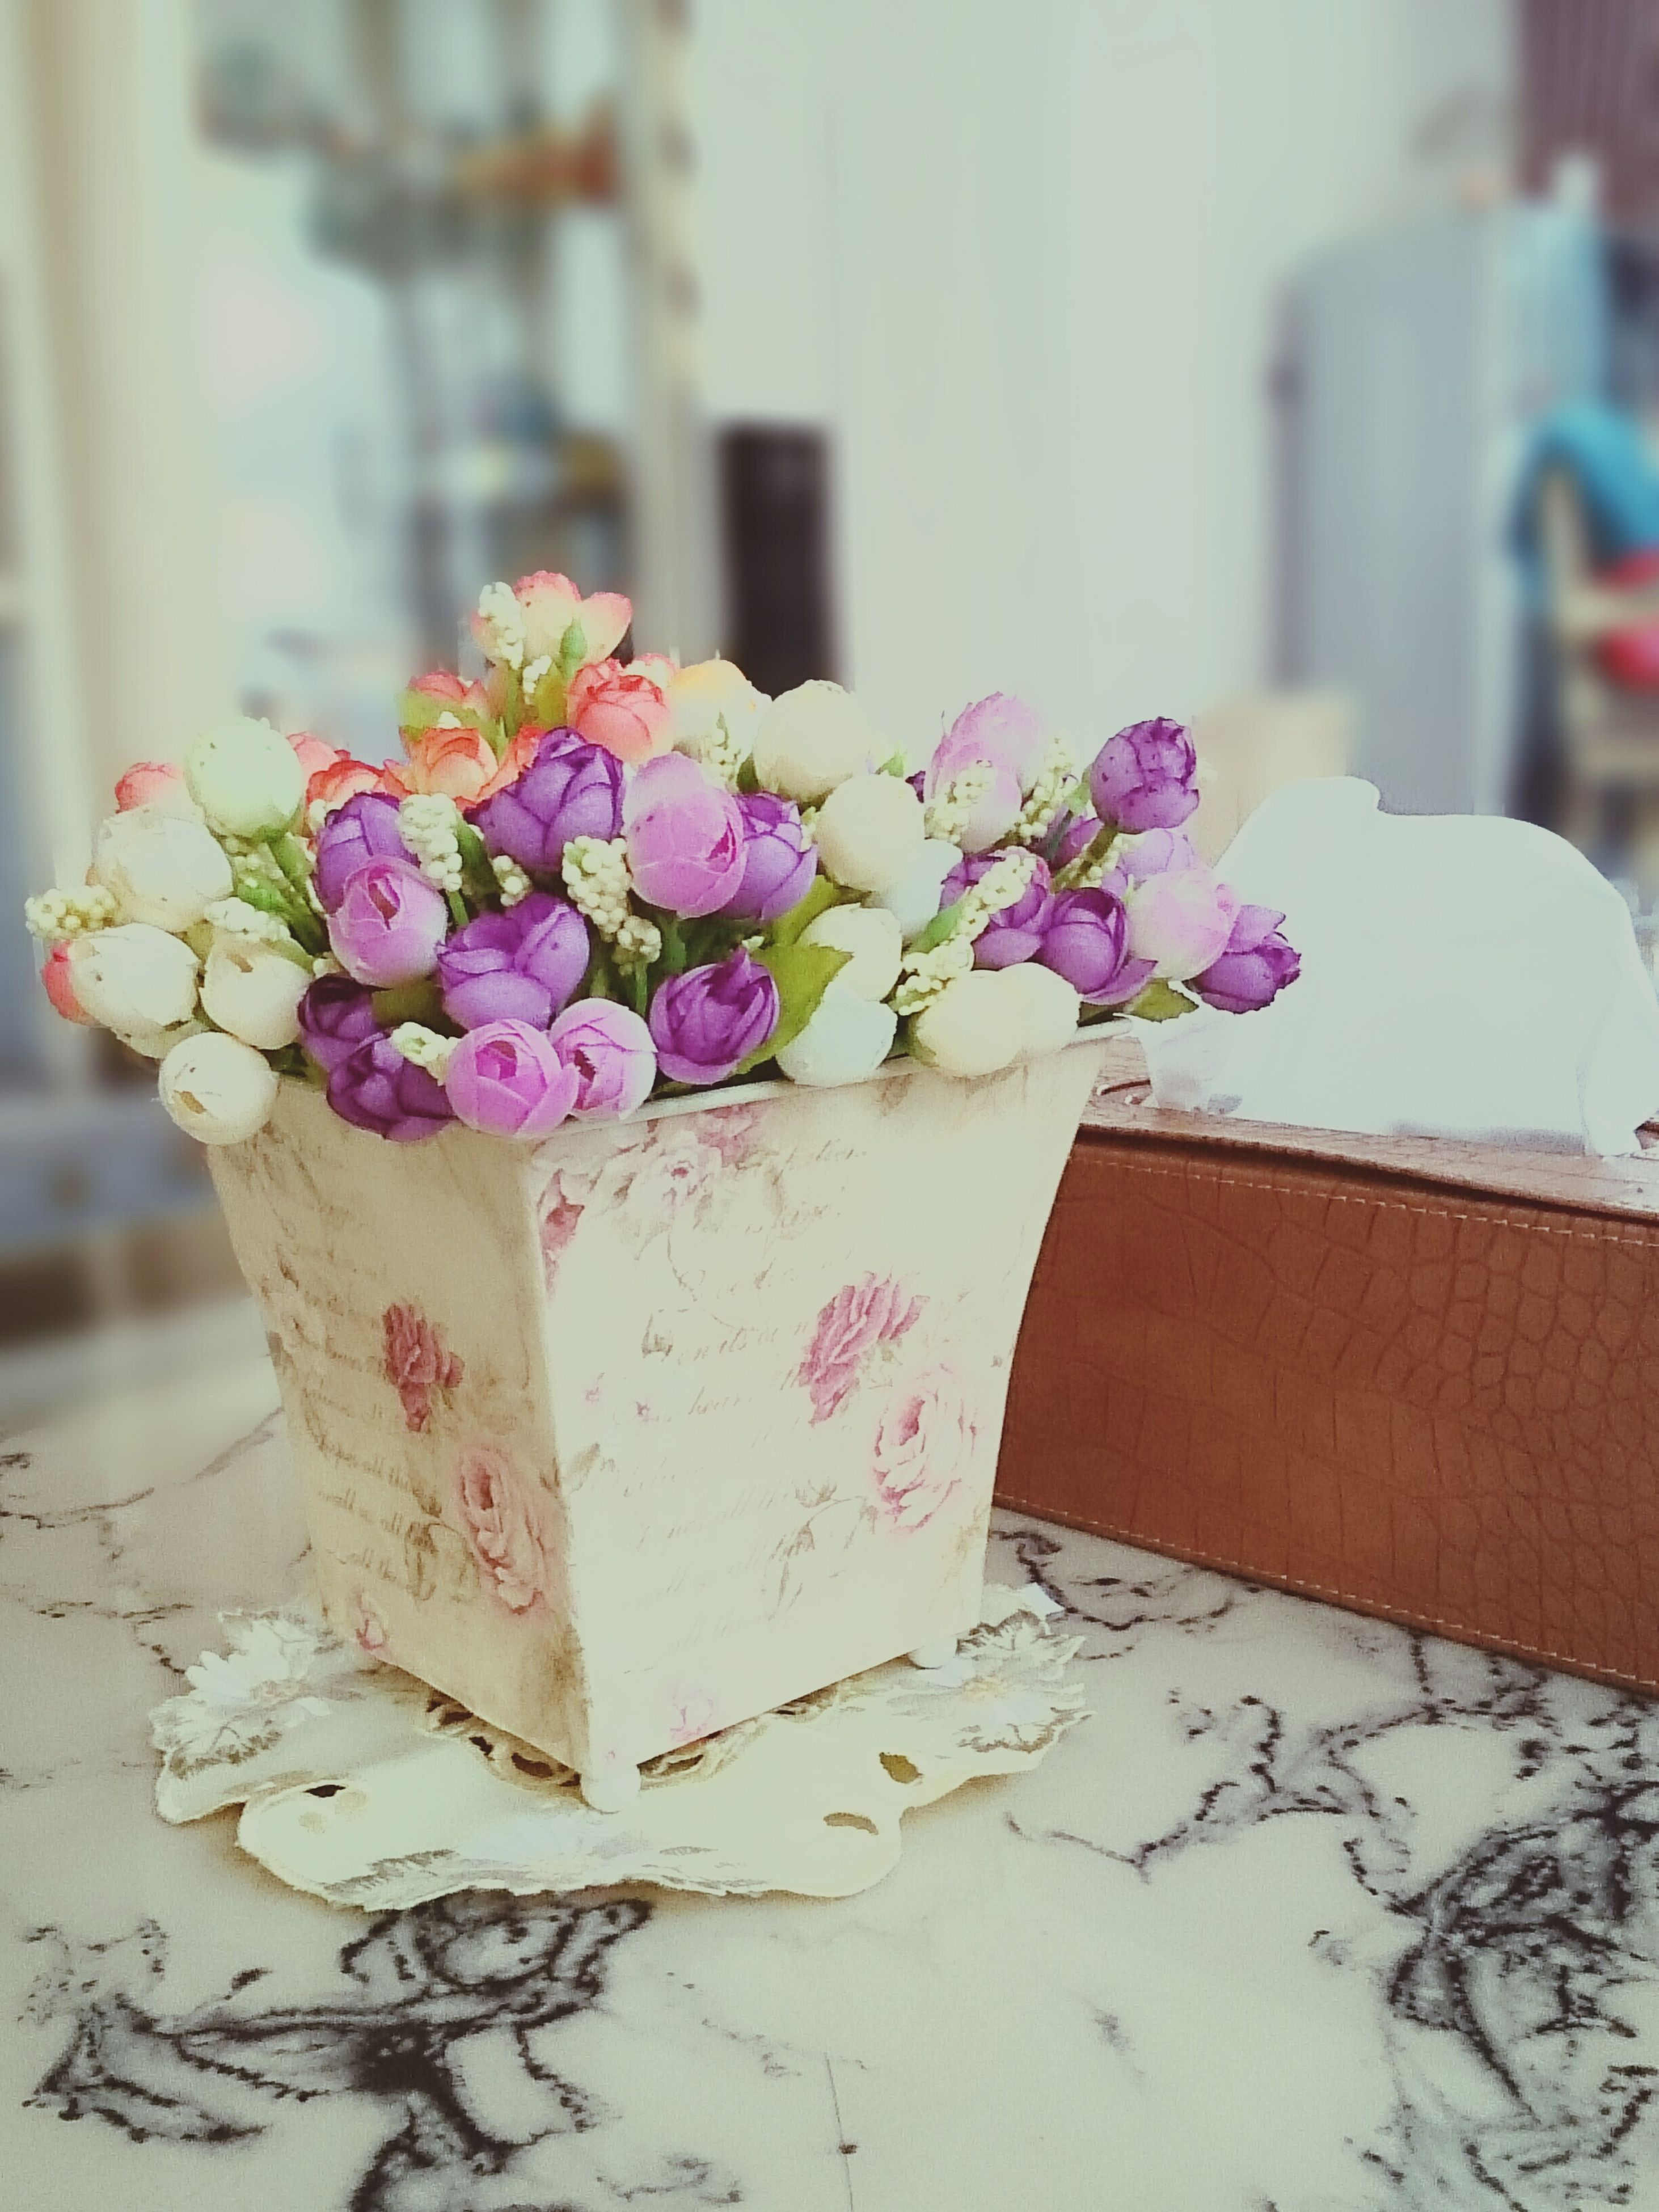 flower, freshness, focus on foreground, fragility, close-up, purple, plant, petal, growth, nature, beauty in nature, selective focus, bunch of flowers, potted plant, day, no people, pink color, table, built structure, leaf